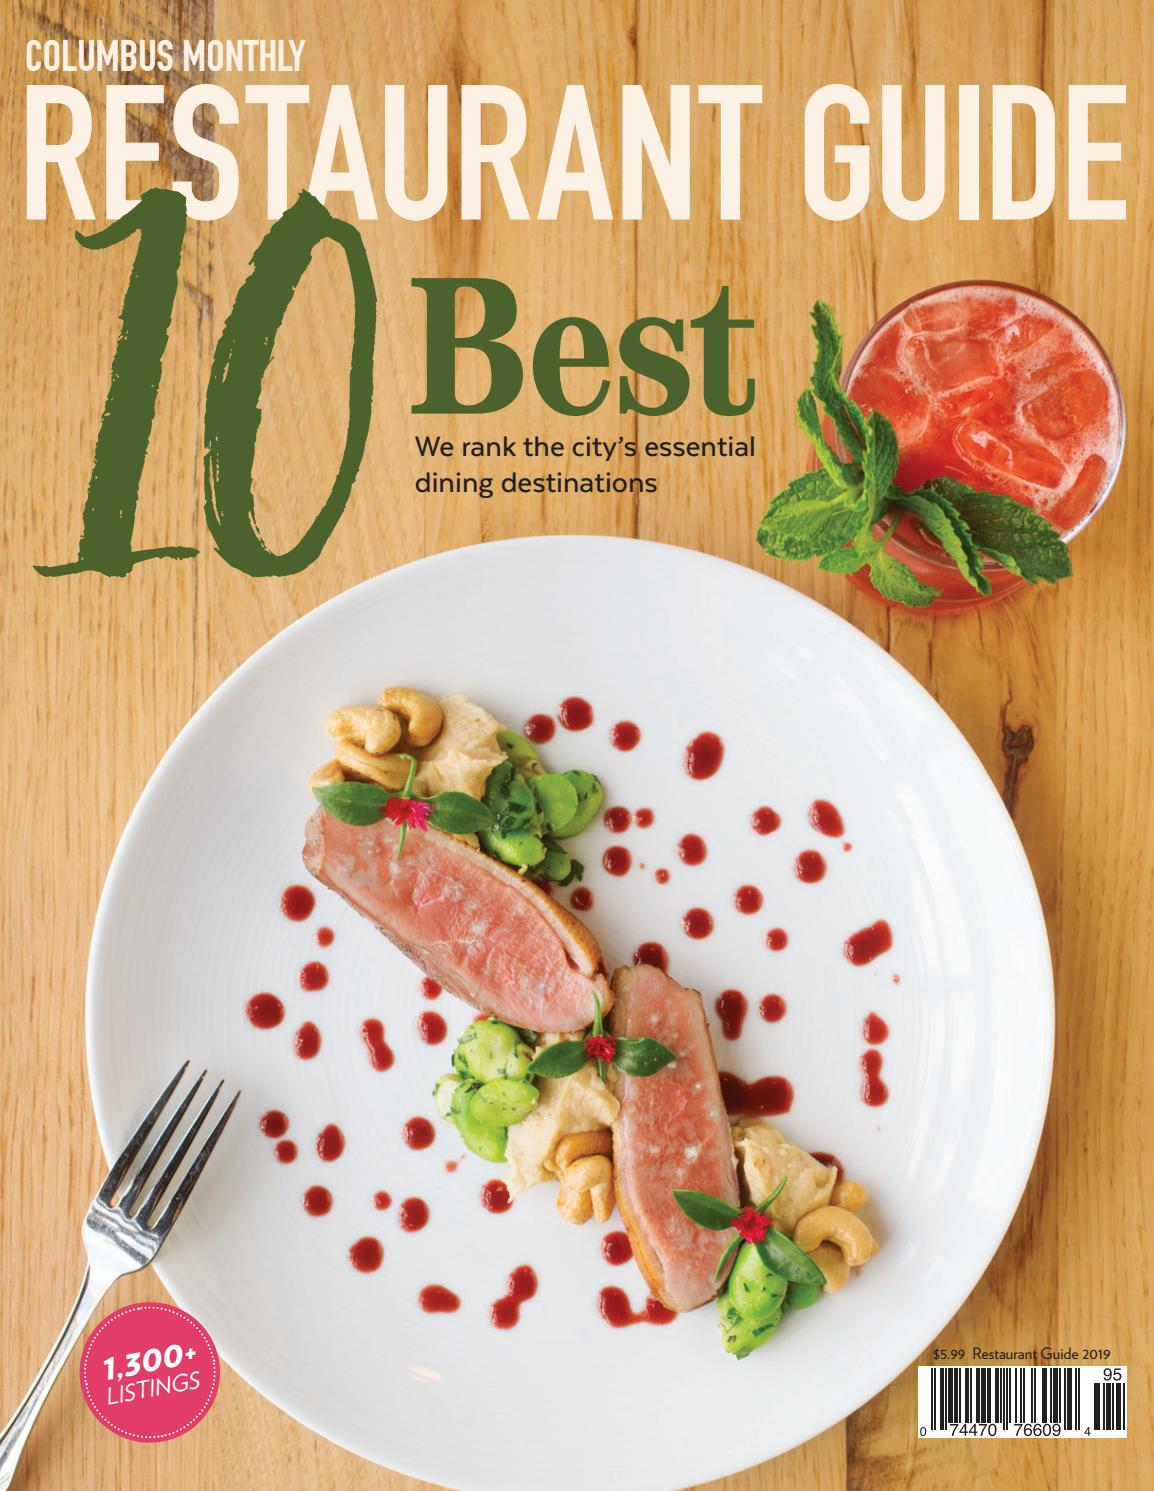 Rossini Cucina Italiana Ridgeland Menu 2019 Columbus Monthly Restaurant Guide